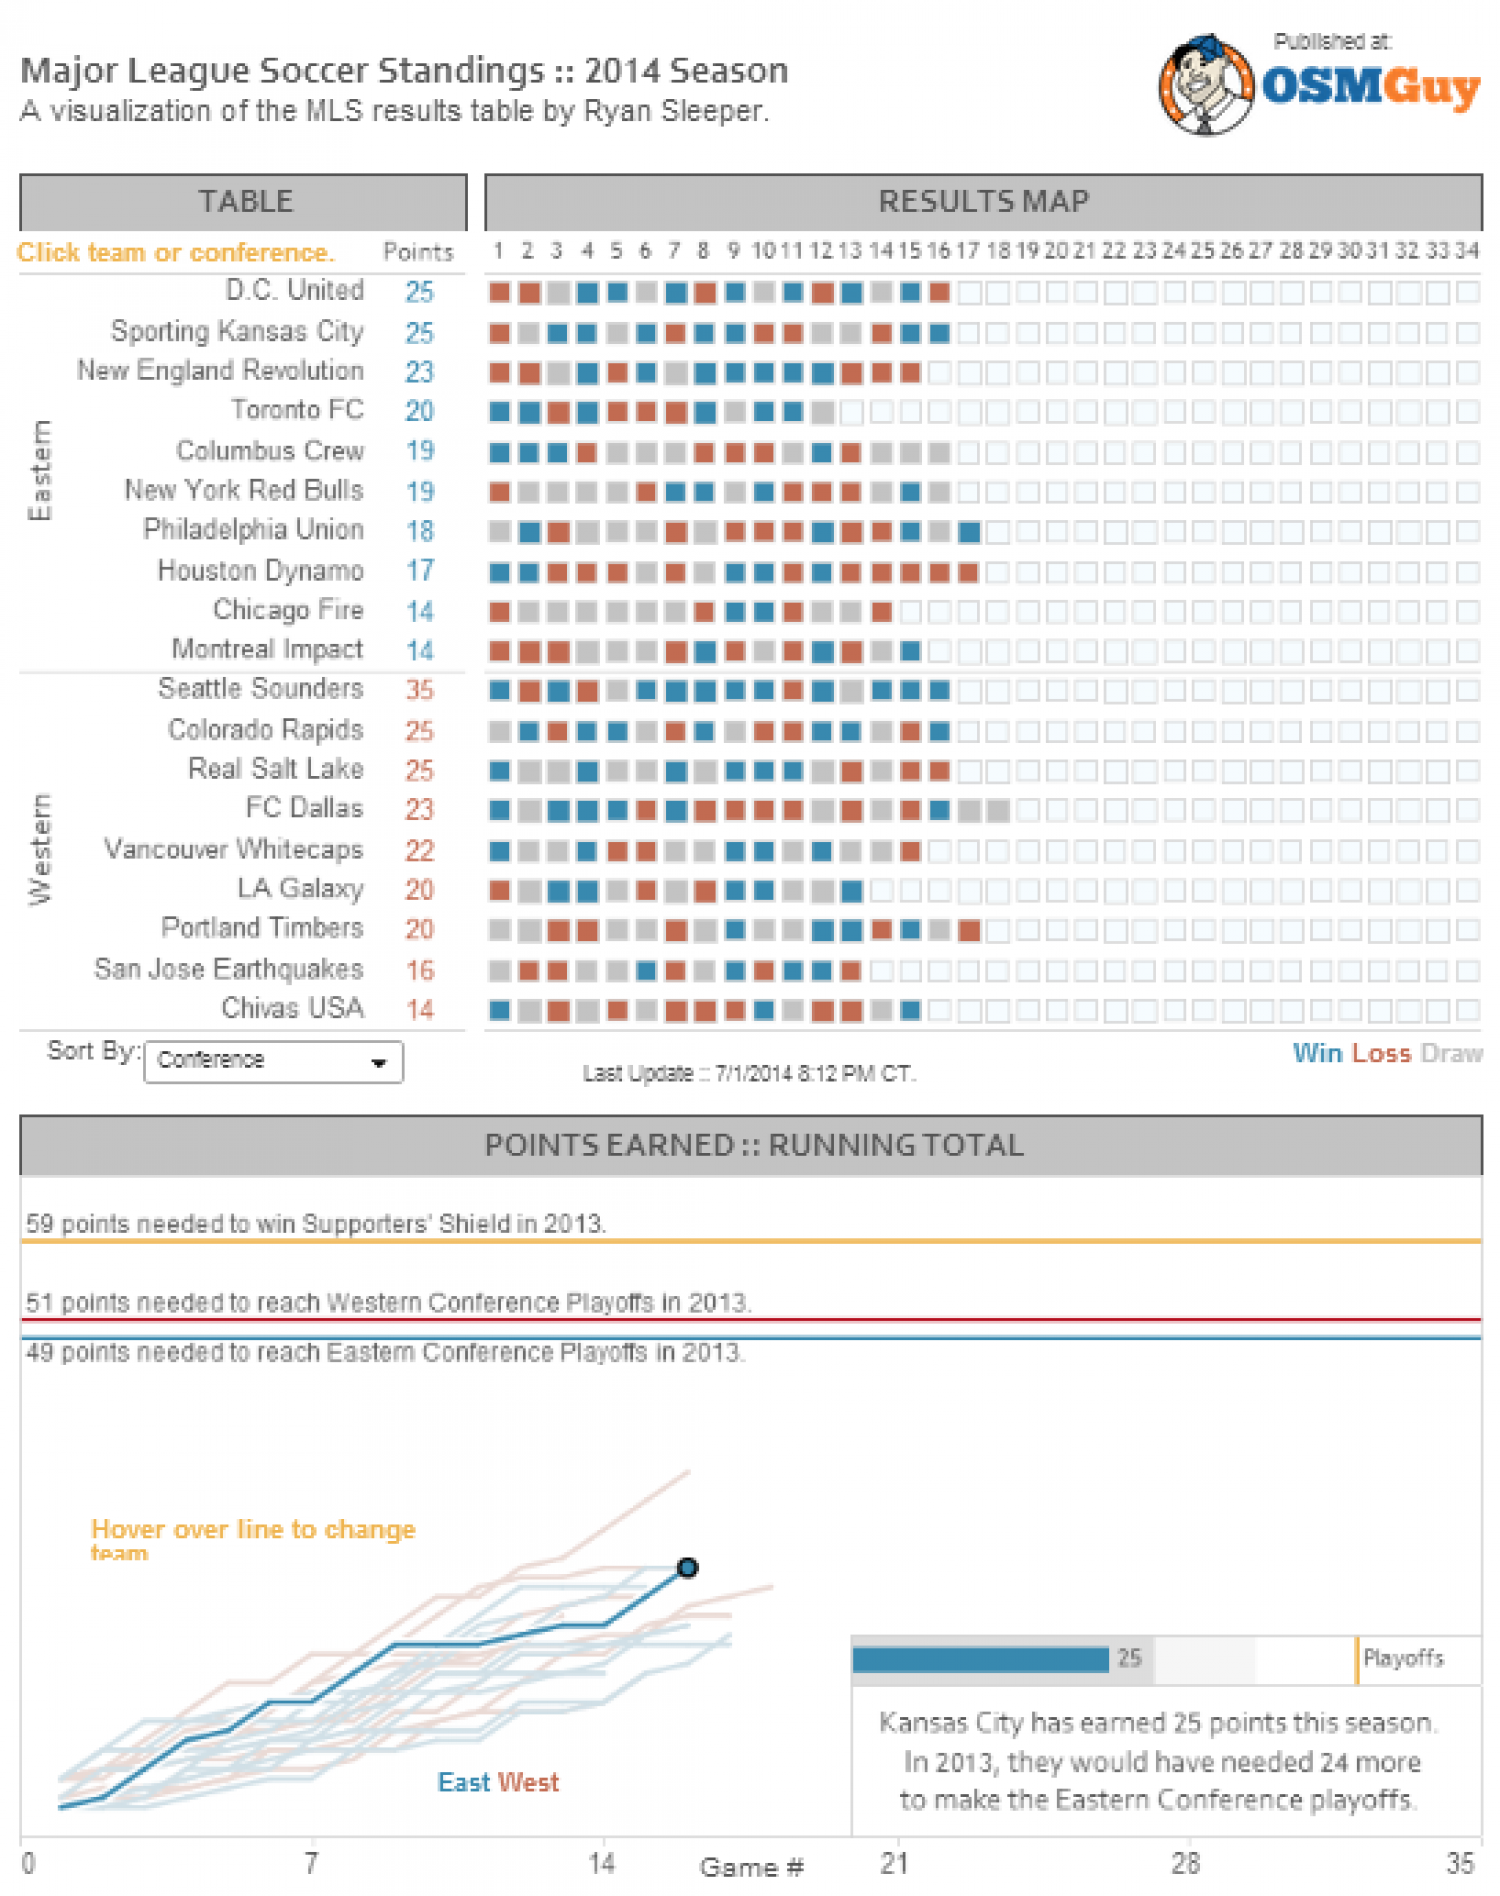 Major League Soccer Standings Reinvented Infographic